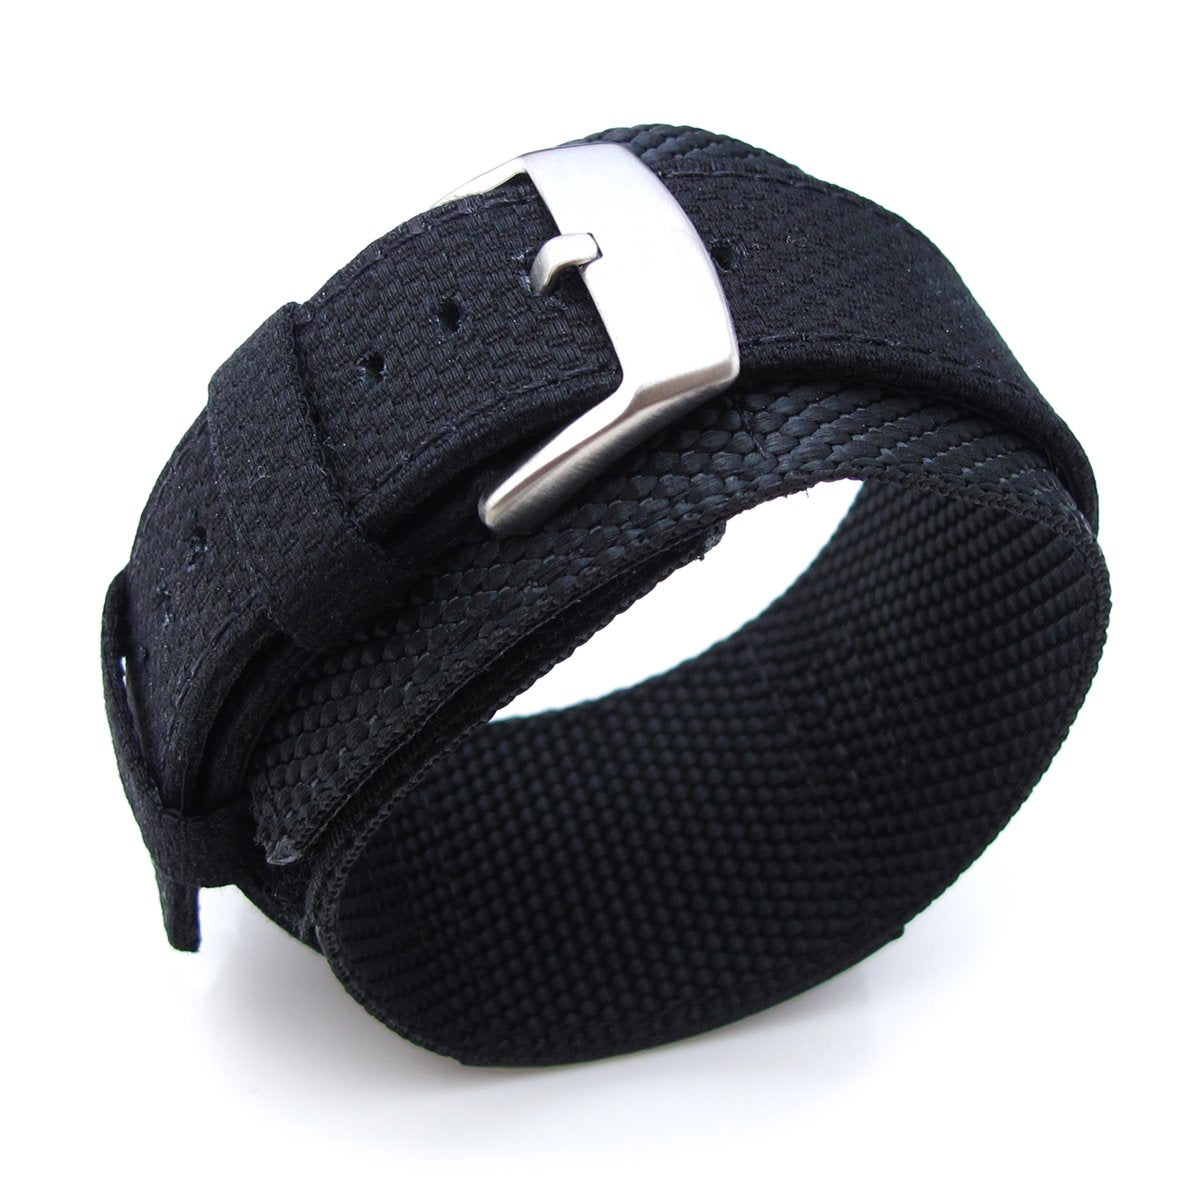 MiLTAT 21mm Double Layer Nylon Black Tactical Velcro Watch Strap Strapcode Watch Bands